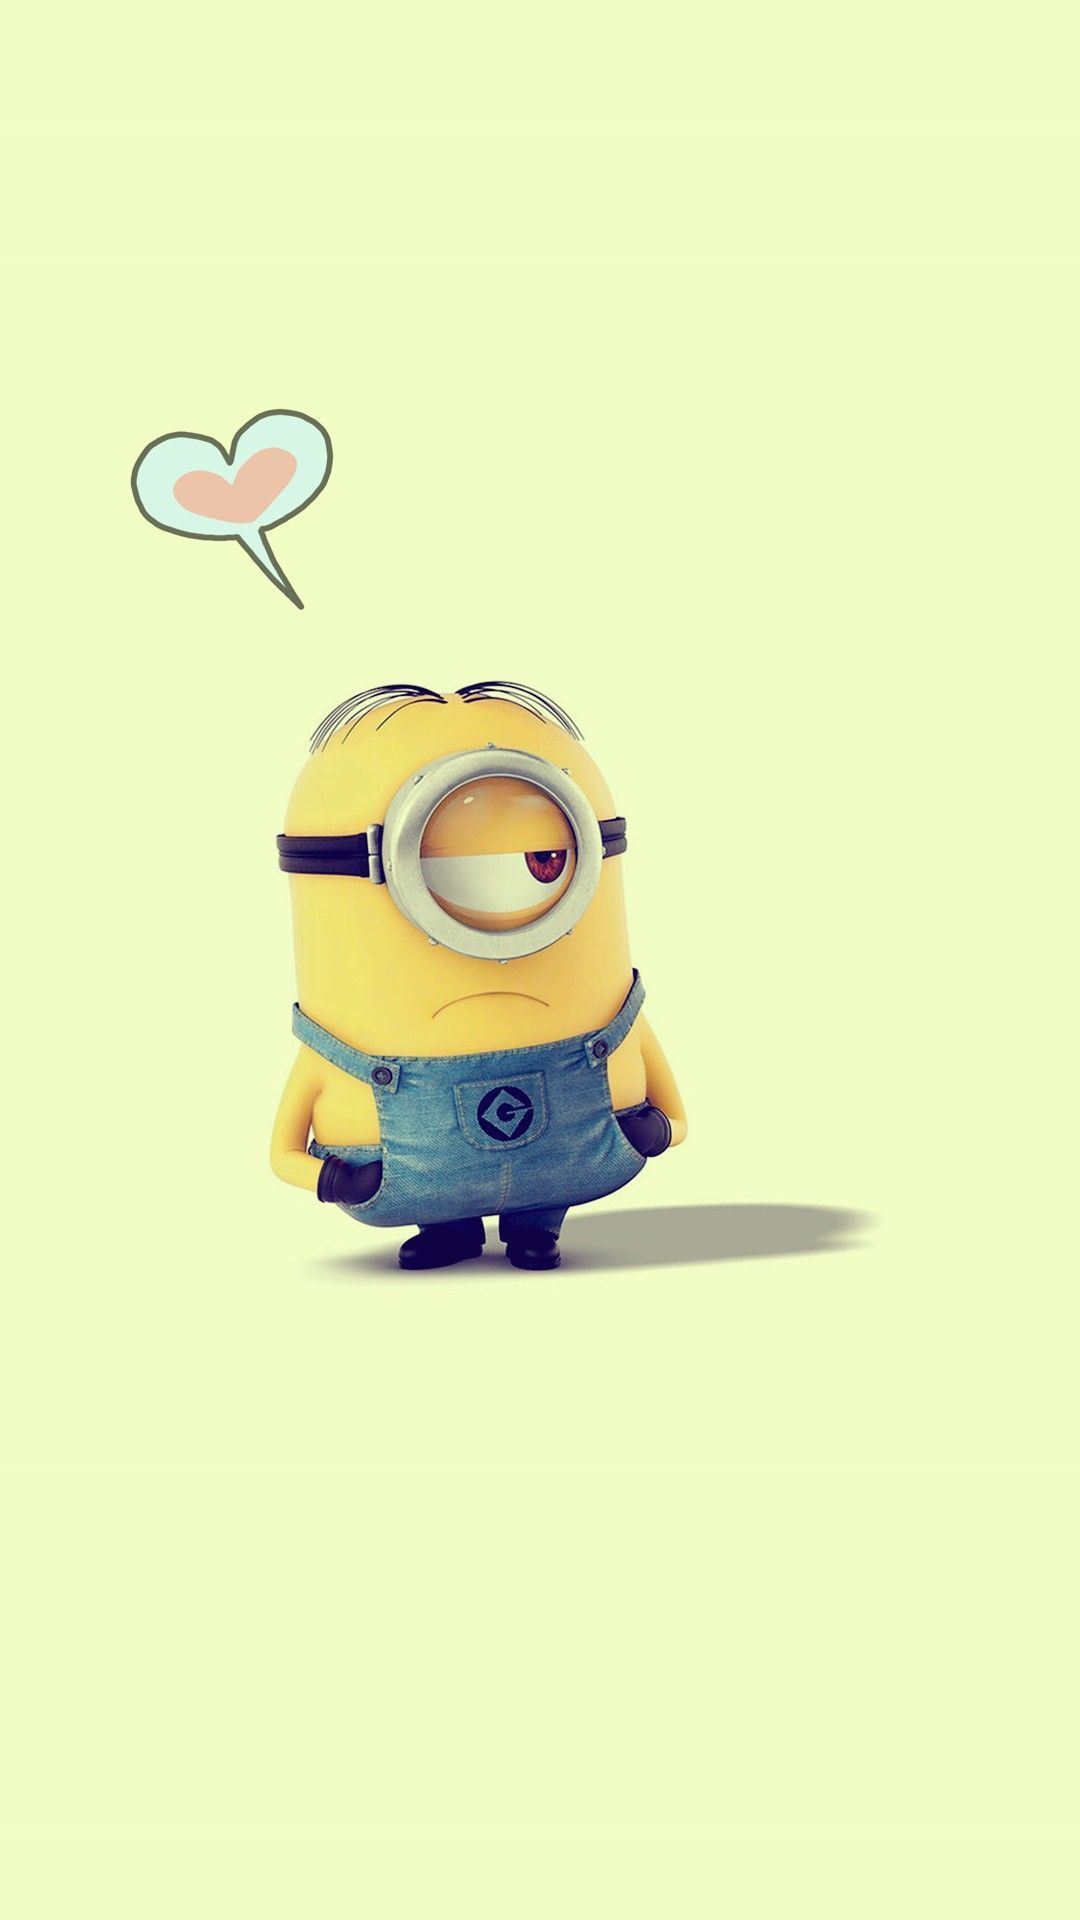 Funny Minion Iphone Wallpapers Top Free Funny Minion Iphone Backgrounds Wallpaperaccess